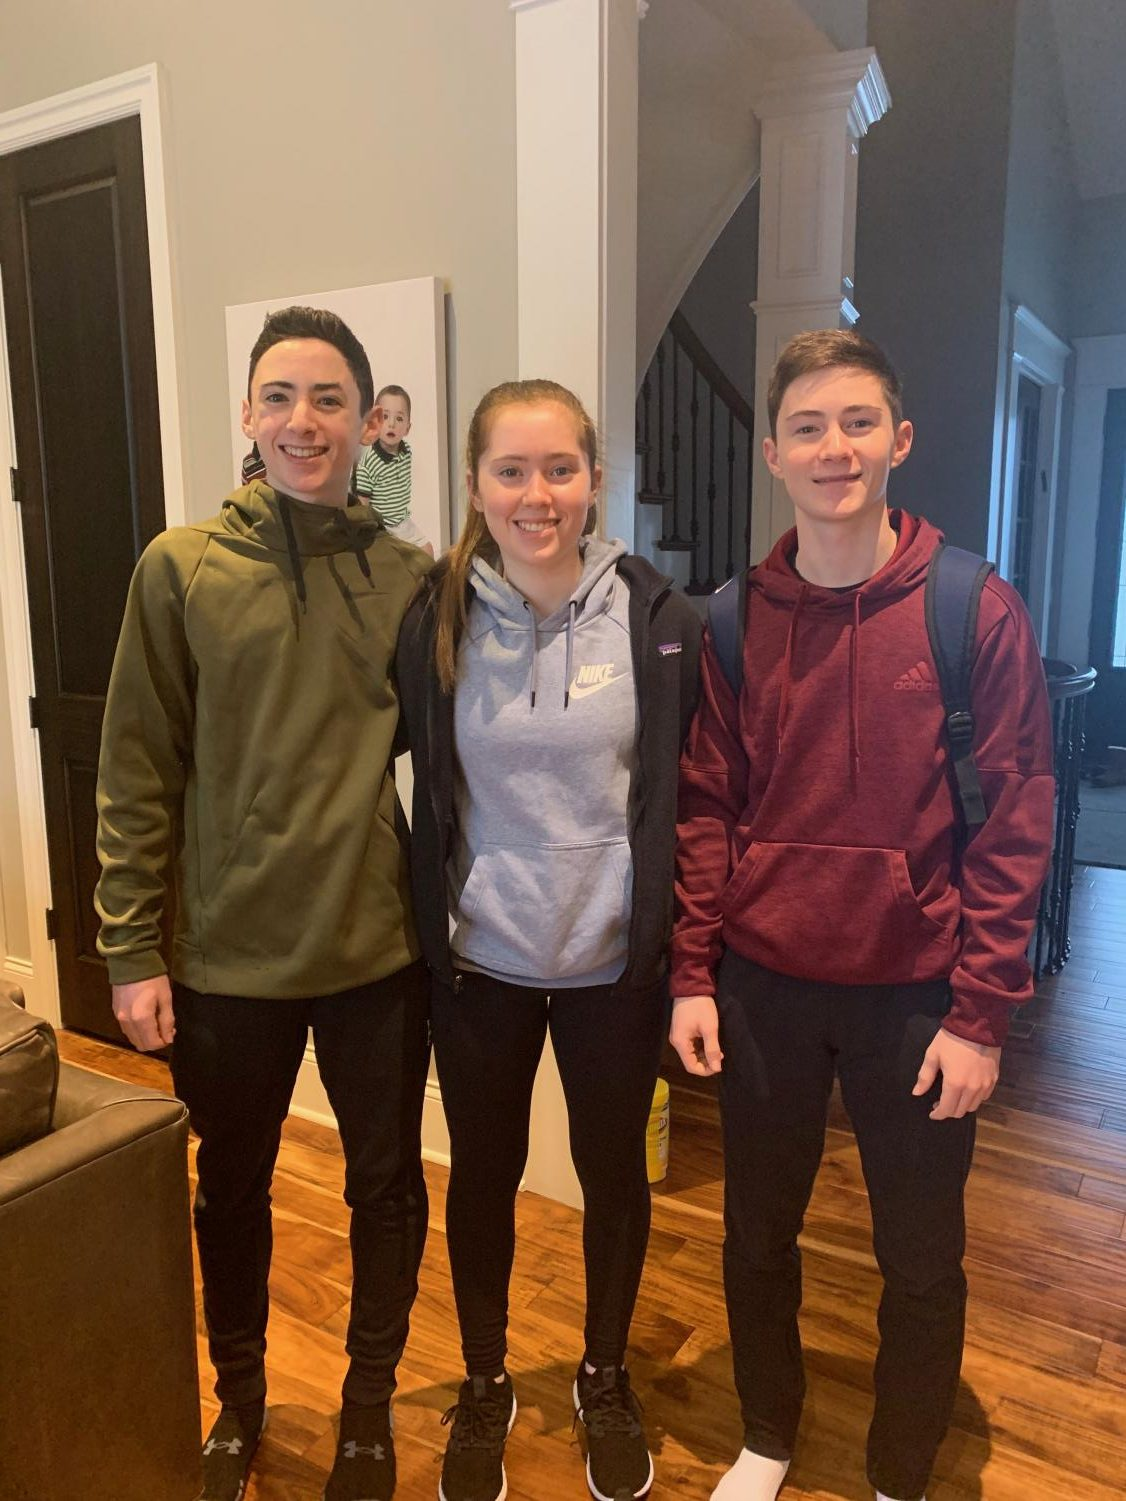 Freshmen triplets are turning heads in varsity sports